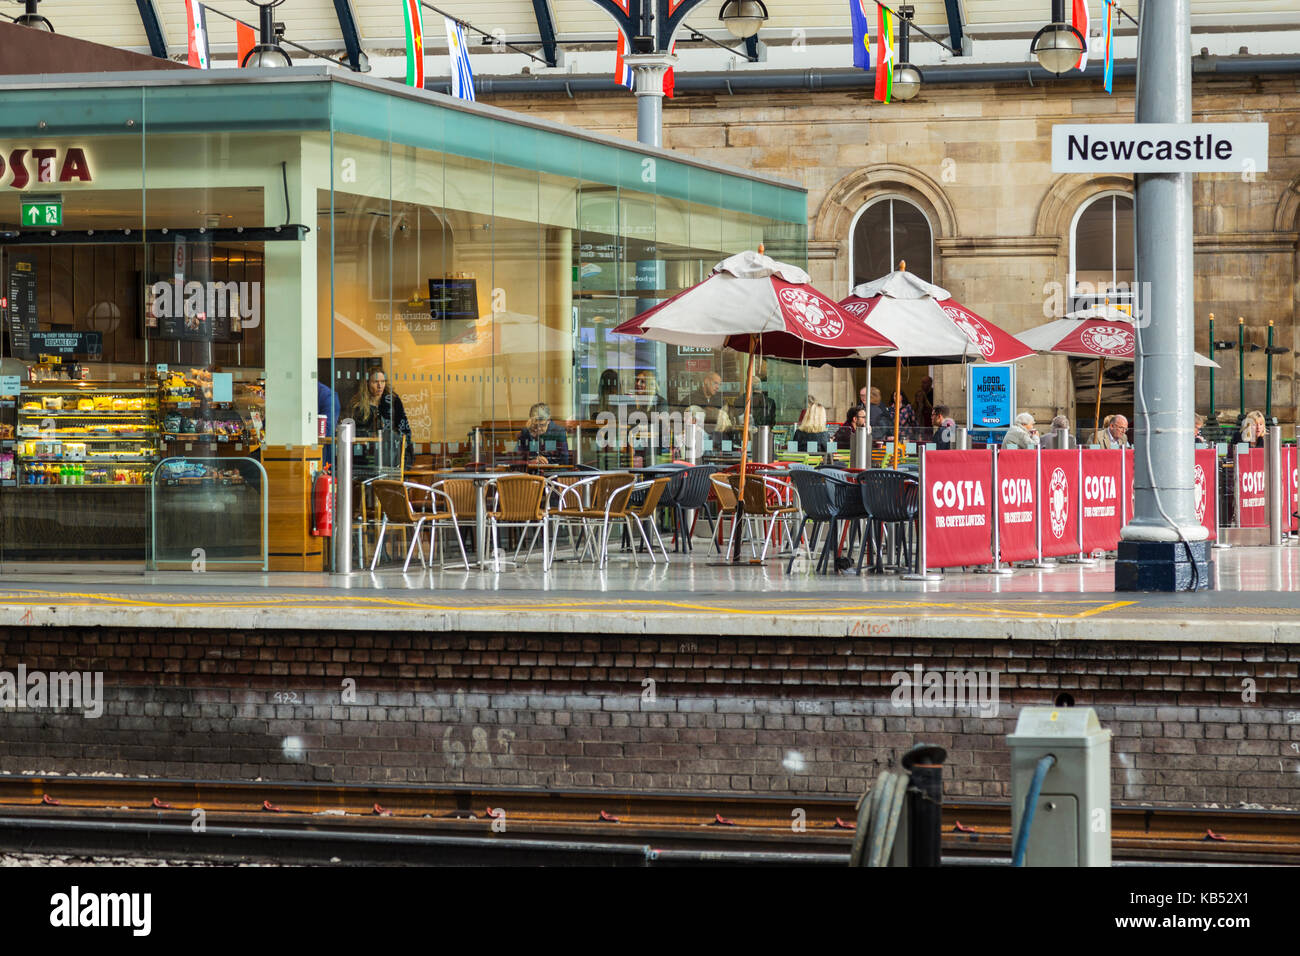 Platforms and Refreshment Facilities at Newcastle Central Station - Stock Image